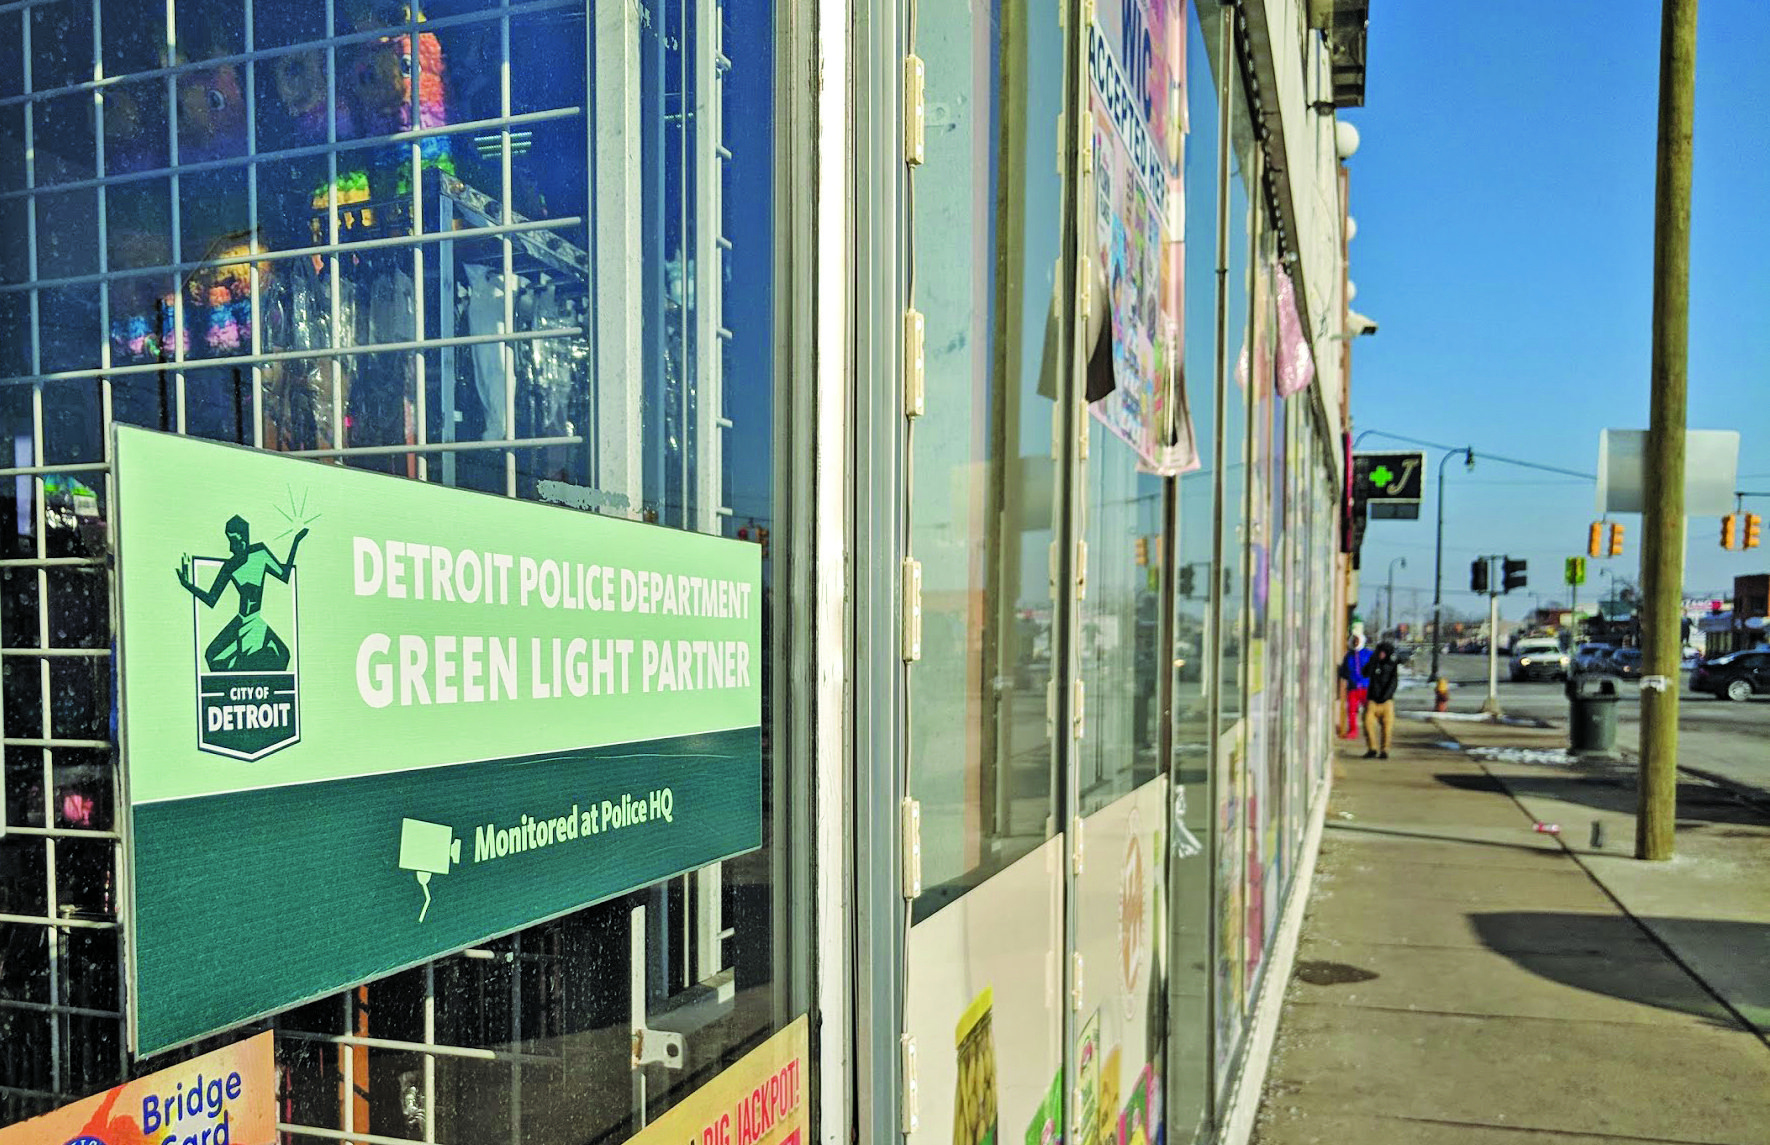 Two years later, Project Green Light proving itself as